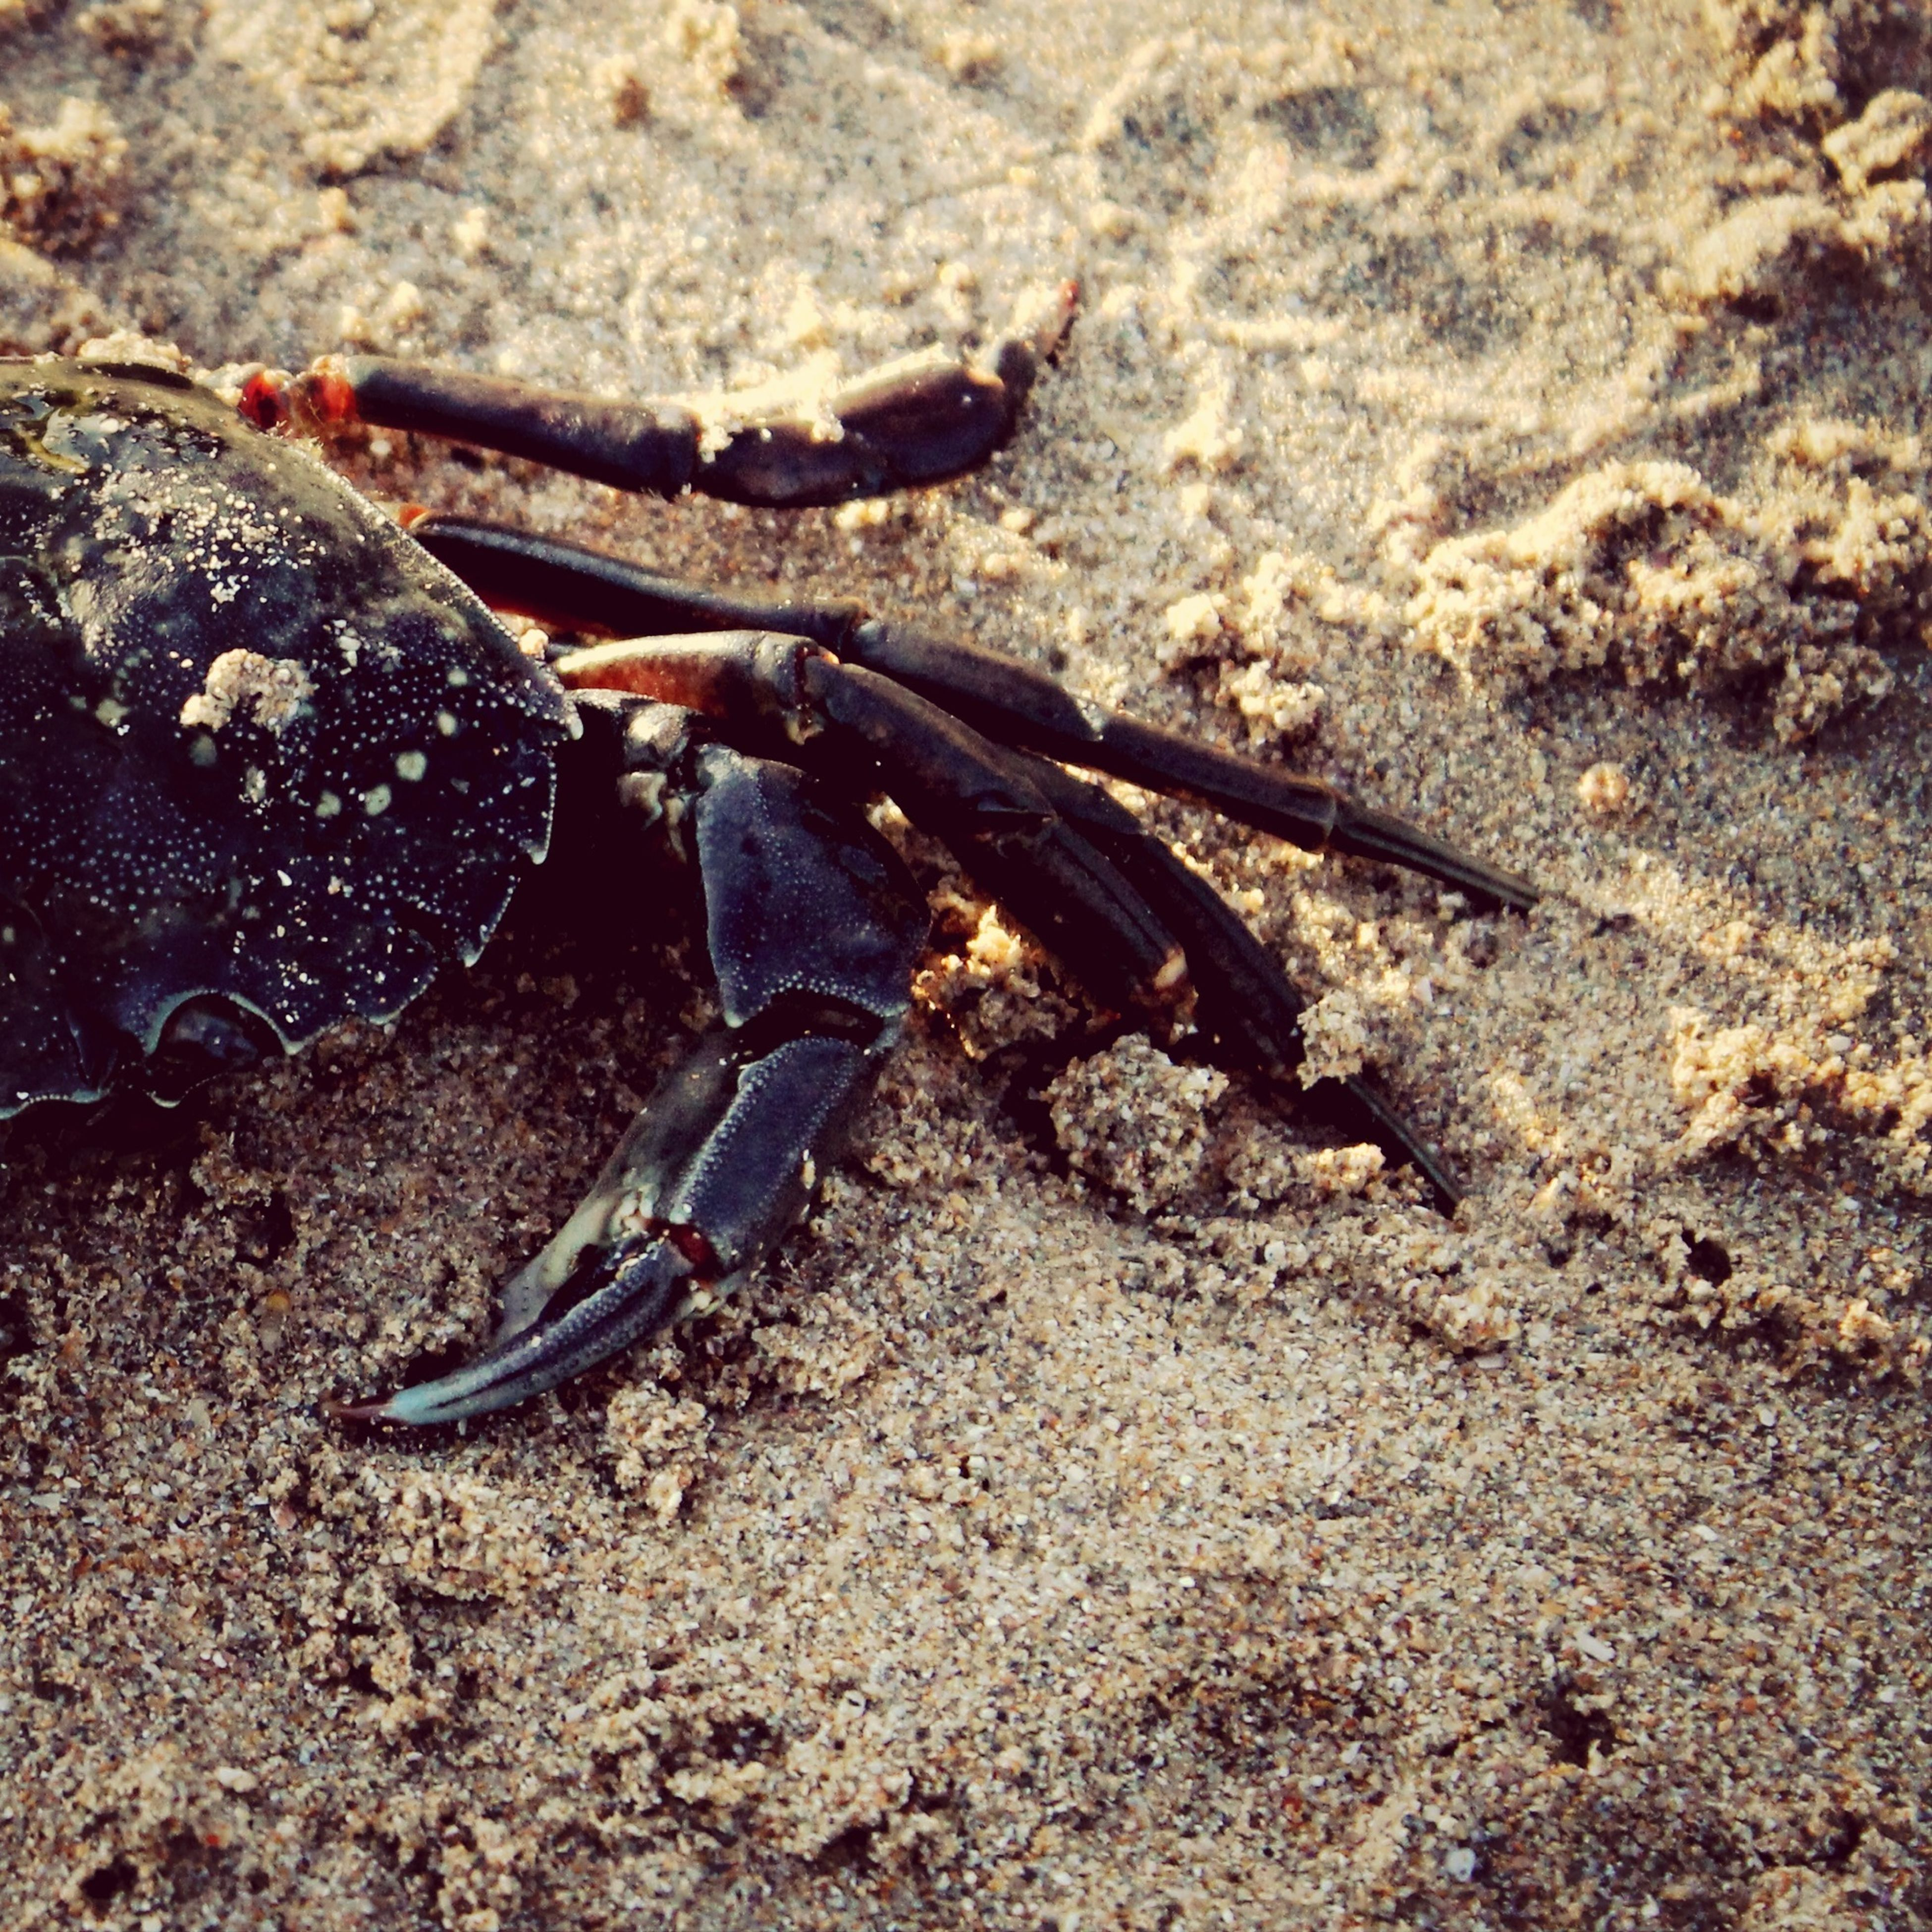 animal themes, animals in the wild, wildlife, one animal, high angle view, sand, beach, insect, nature, zoology, sea life, full length, day, outdoors, crab, dead animal, sunlight, close-up, rock - object, reptile